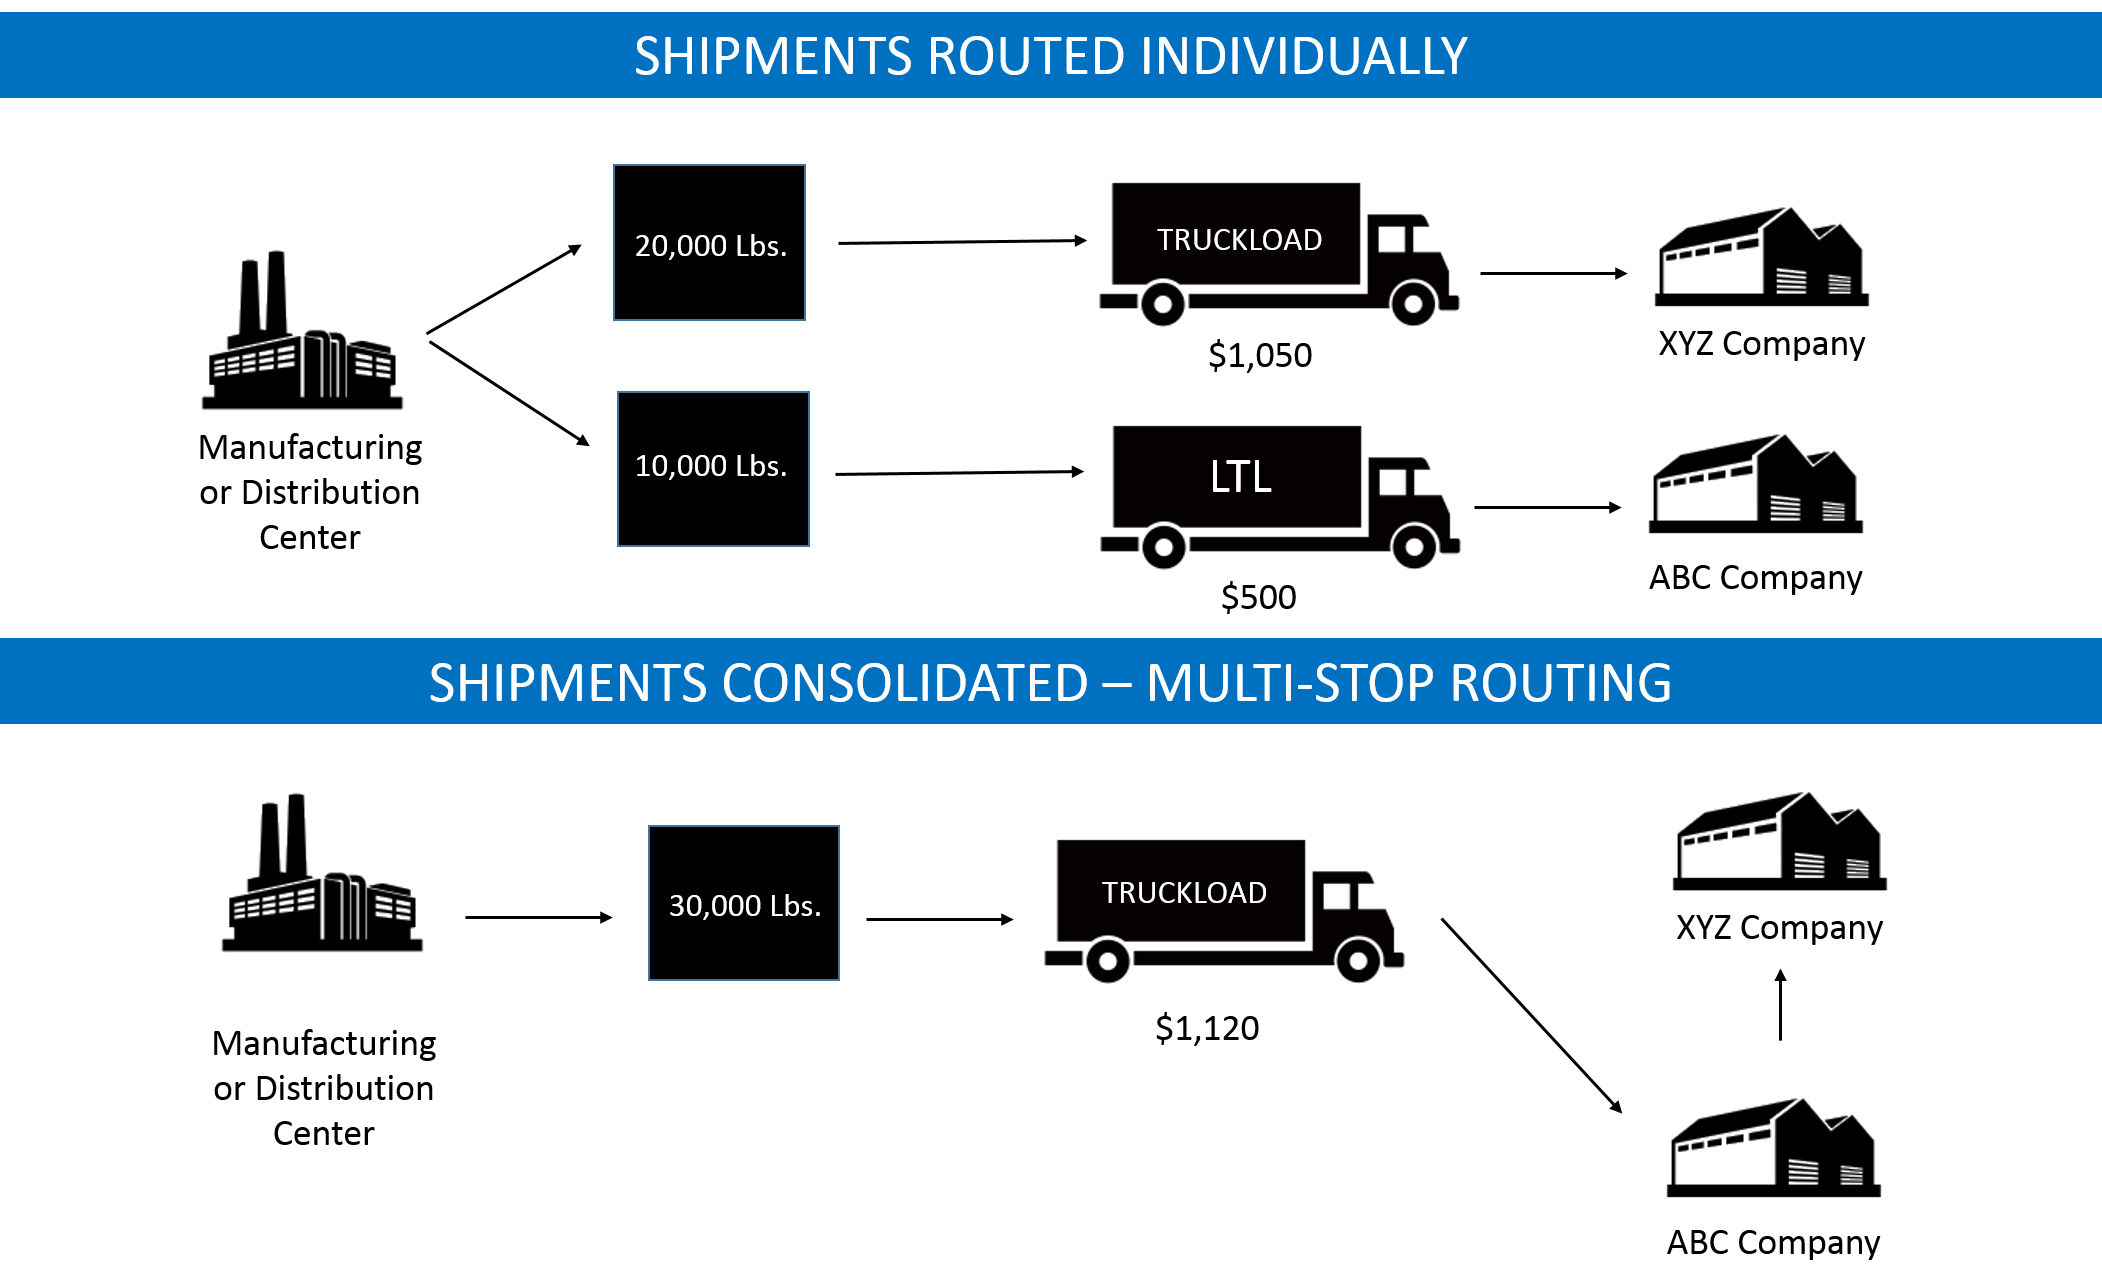 Transportation Consolidation Programs Reduce Freight Spend